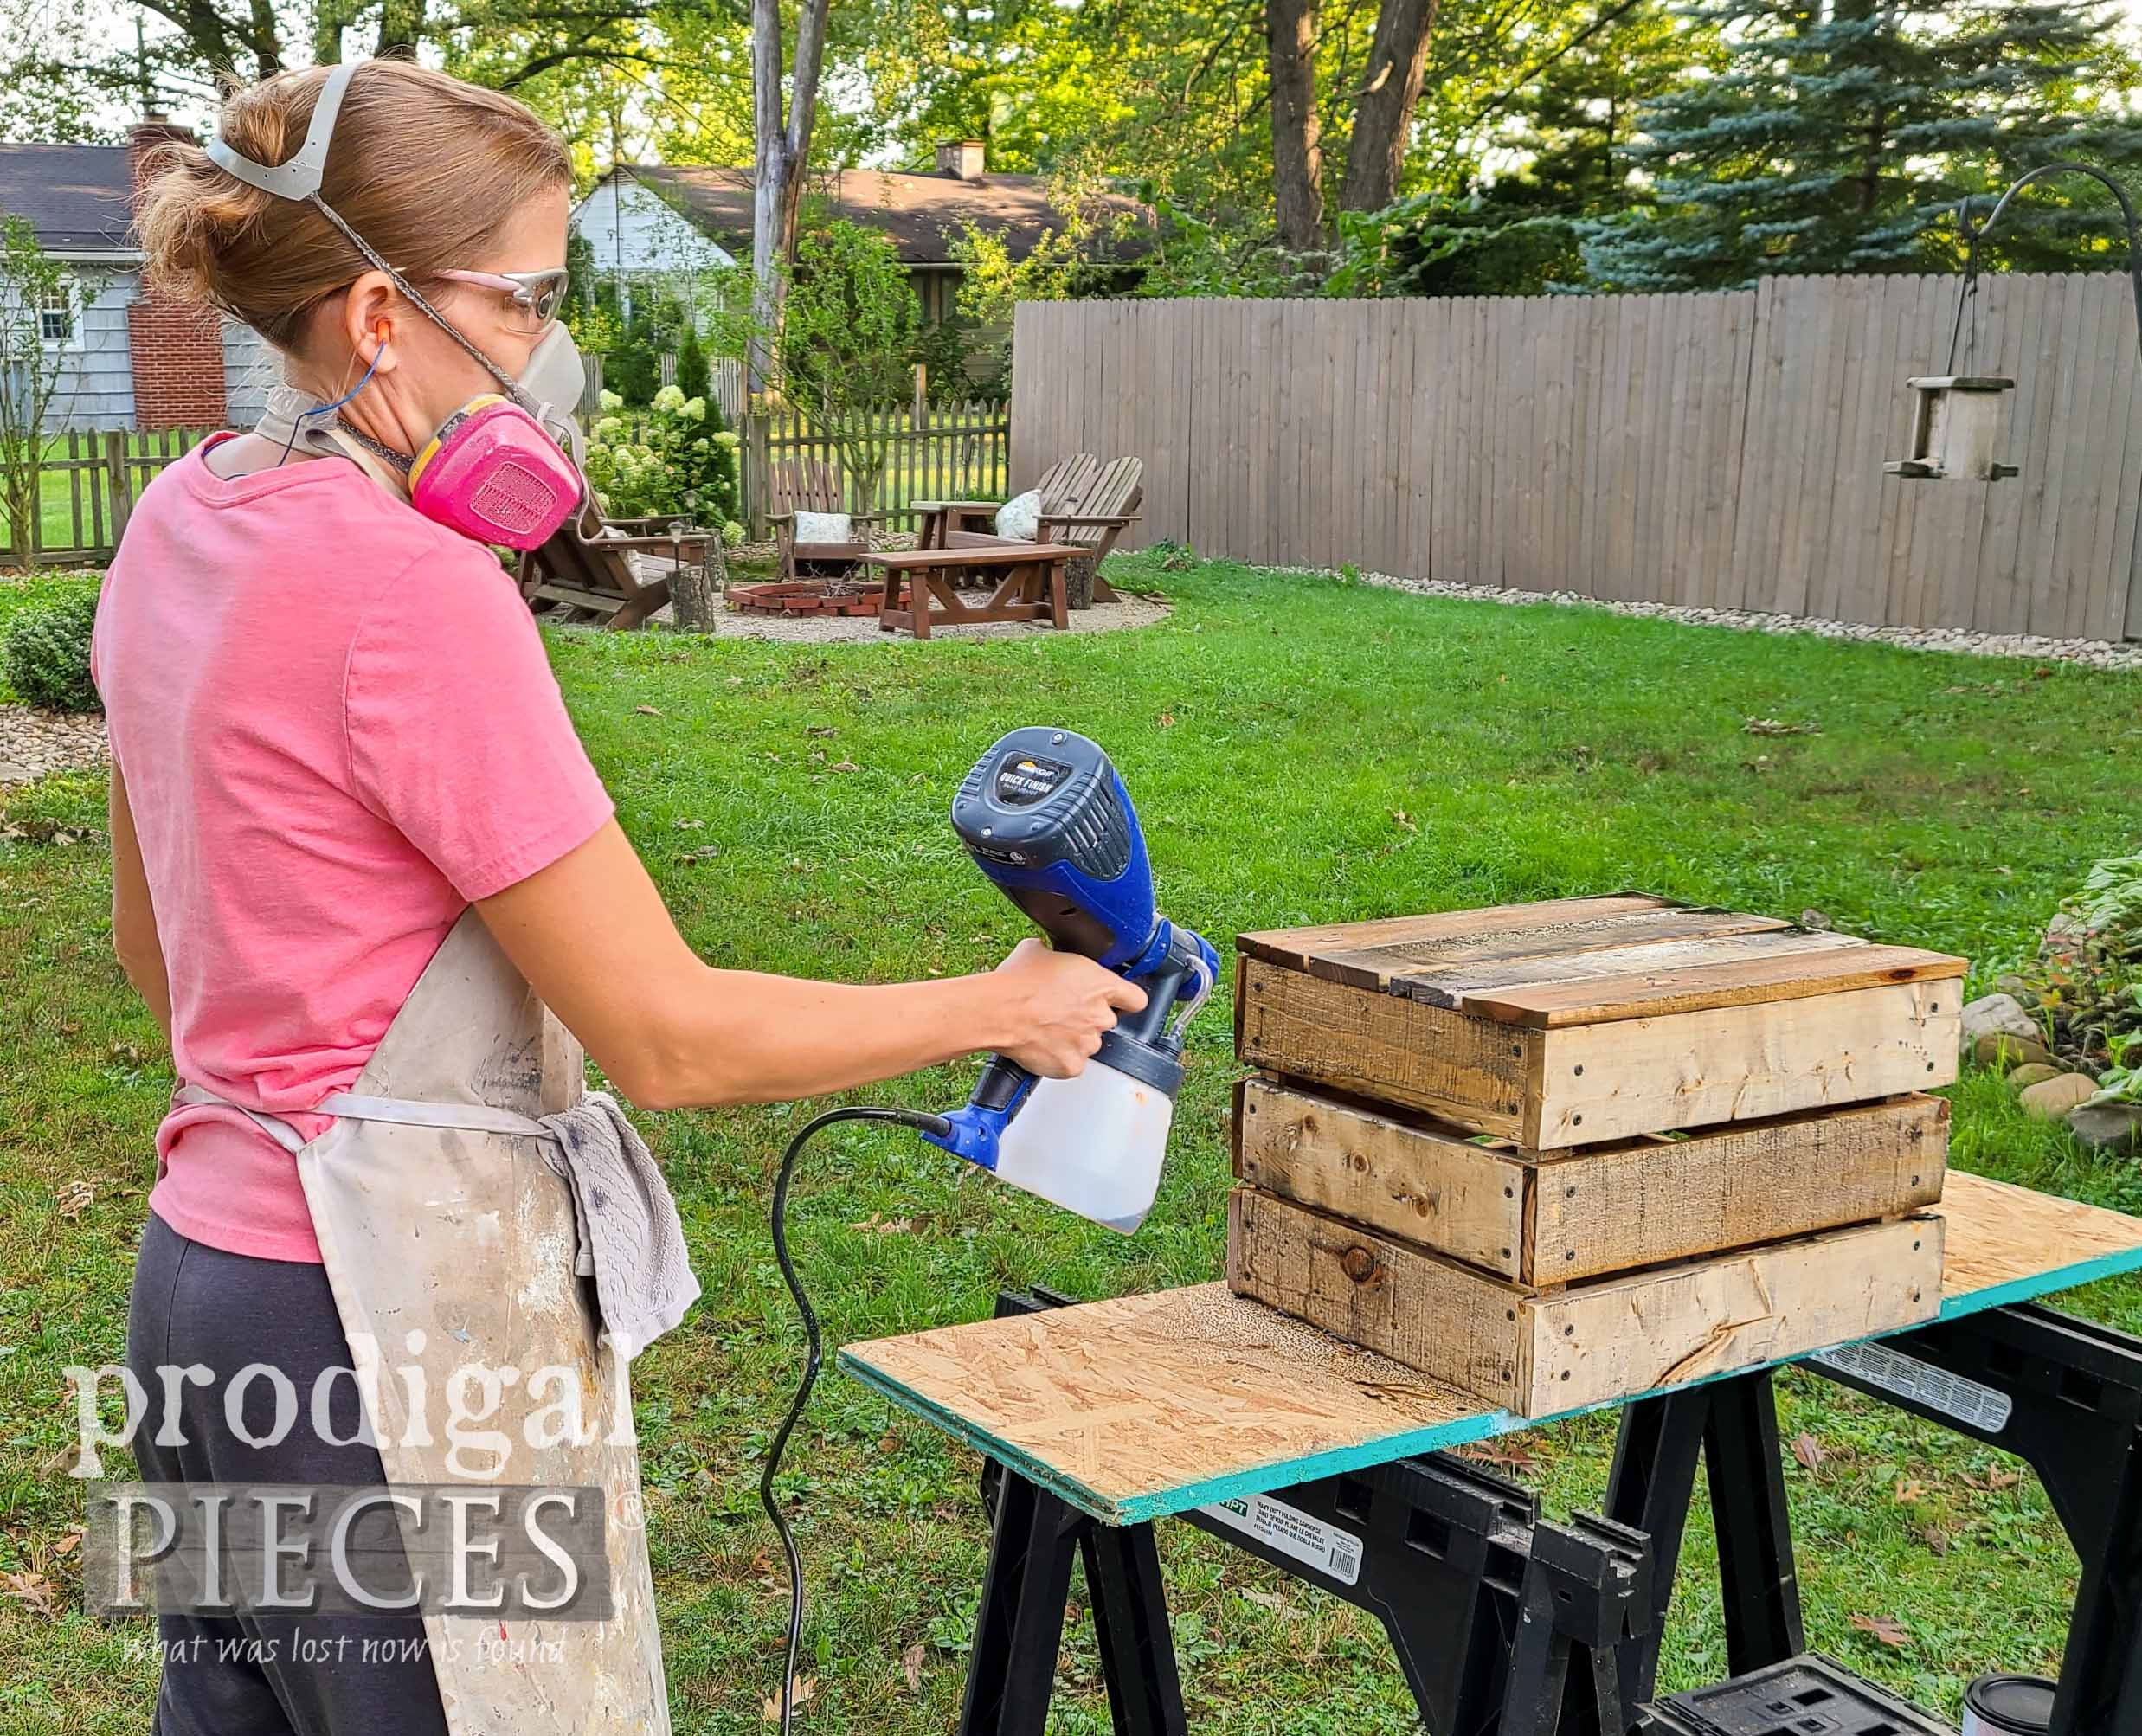 Larissa of Prodigal Pieces Spraying Crate with Weathered Wood Stain for Aged Appeal | Prodigal Pieces | prodigalpieces.com #prodigalpieces #diy #tools